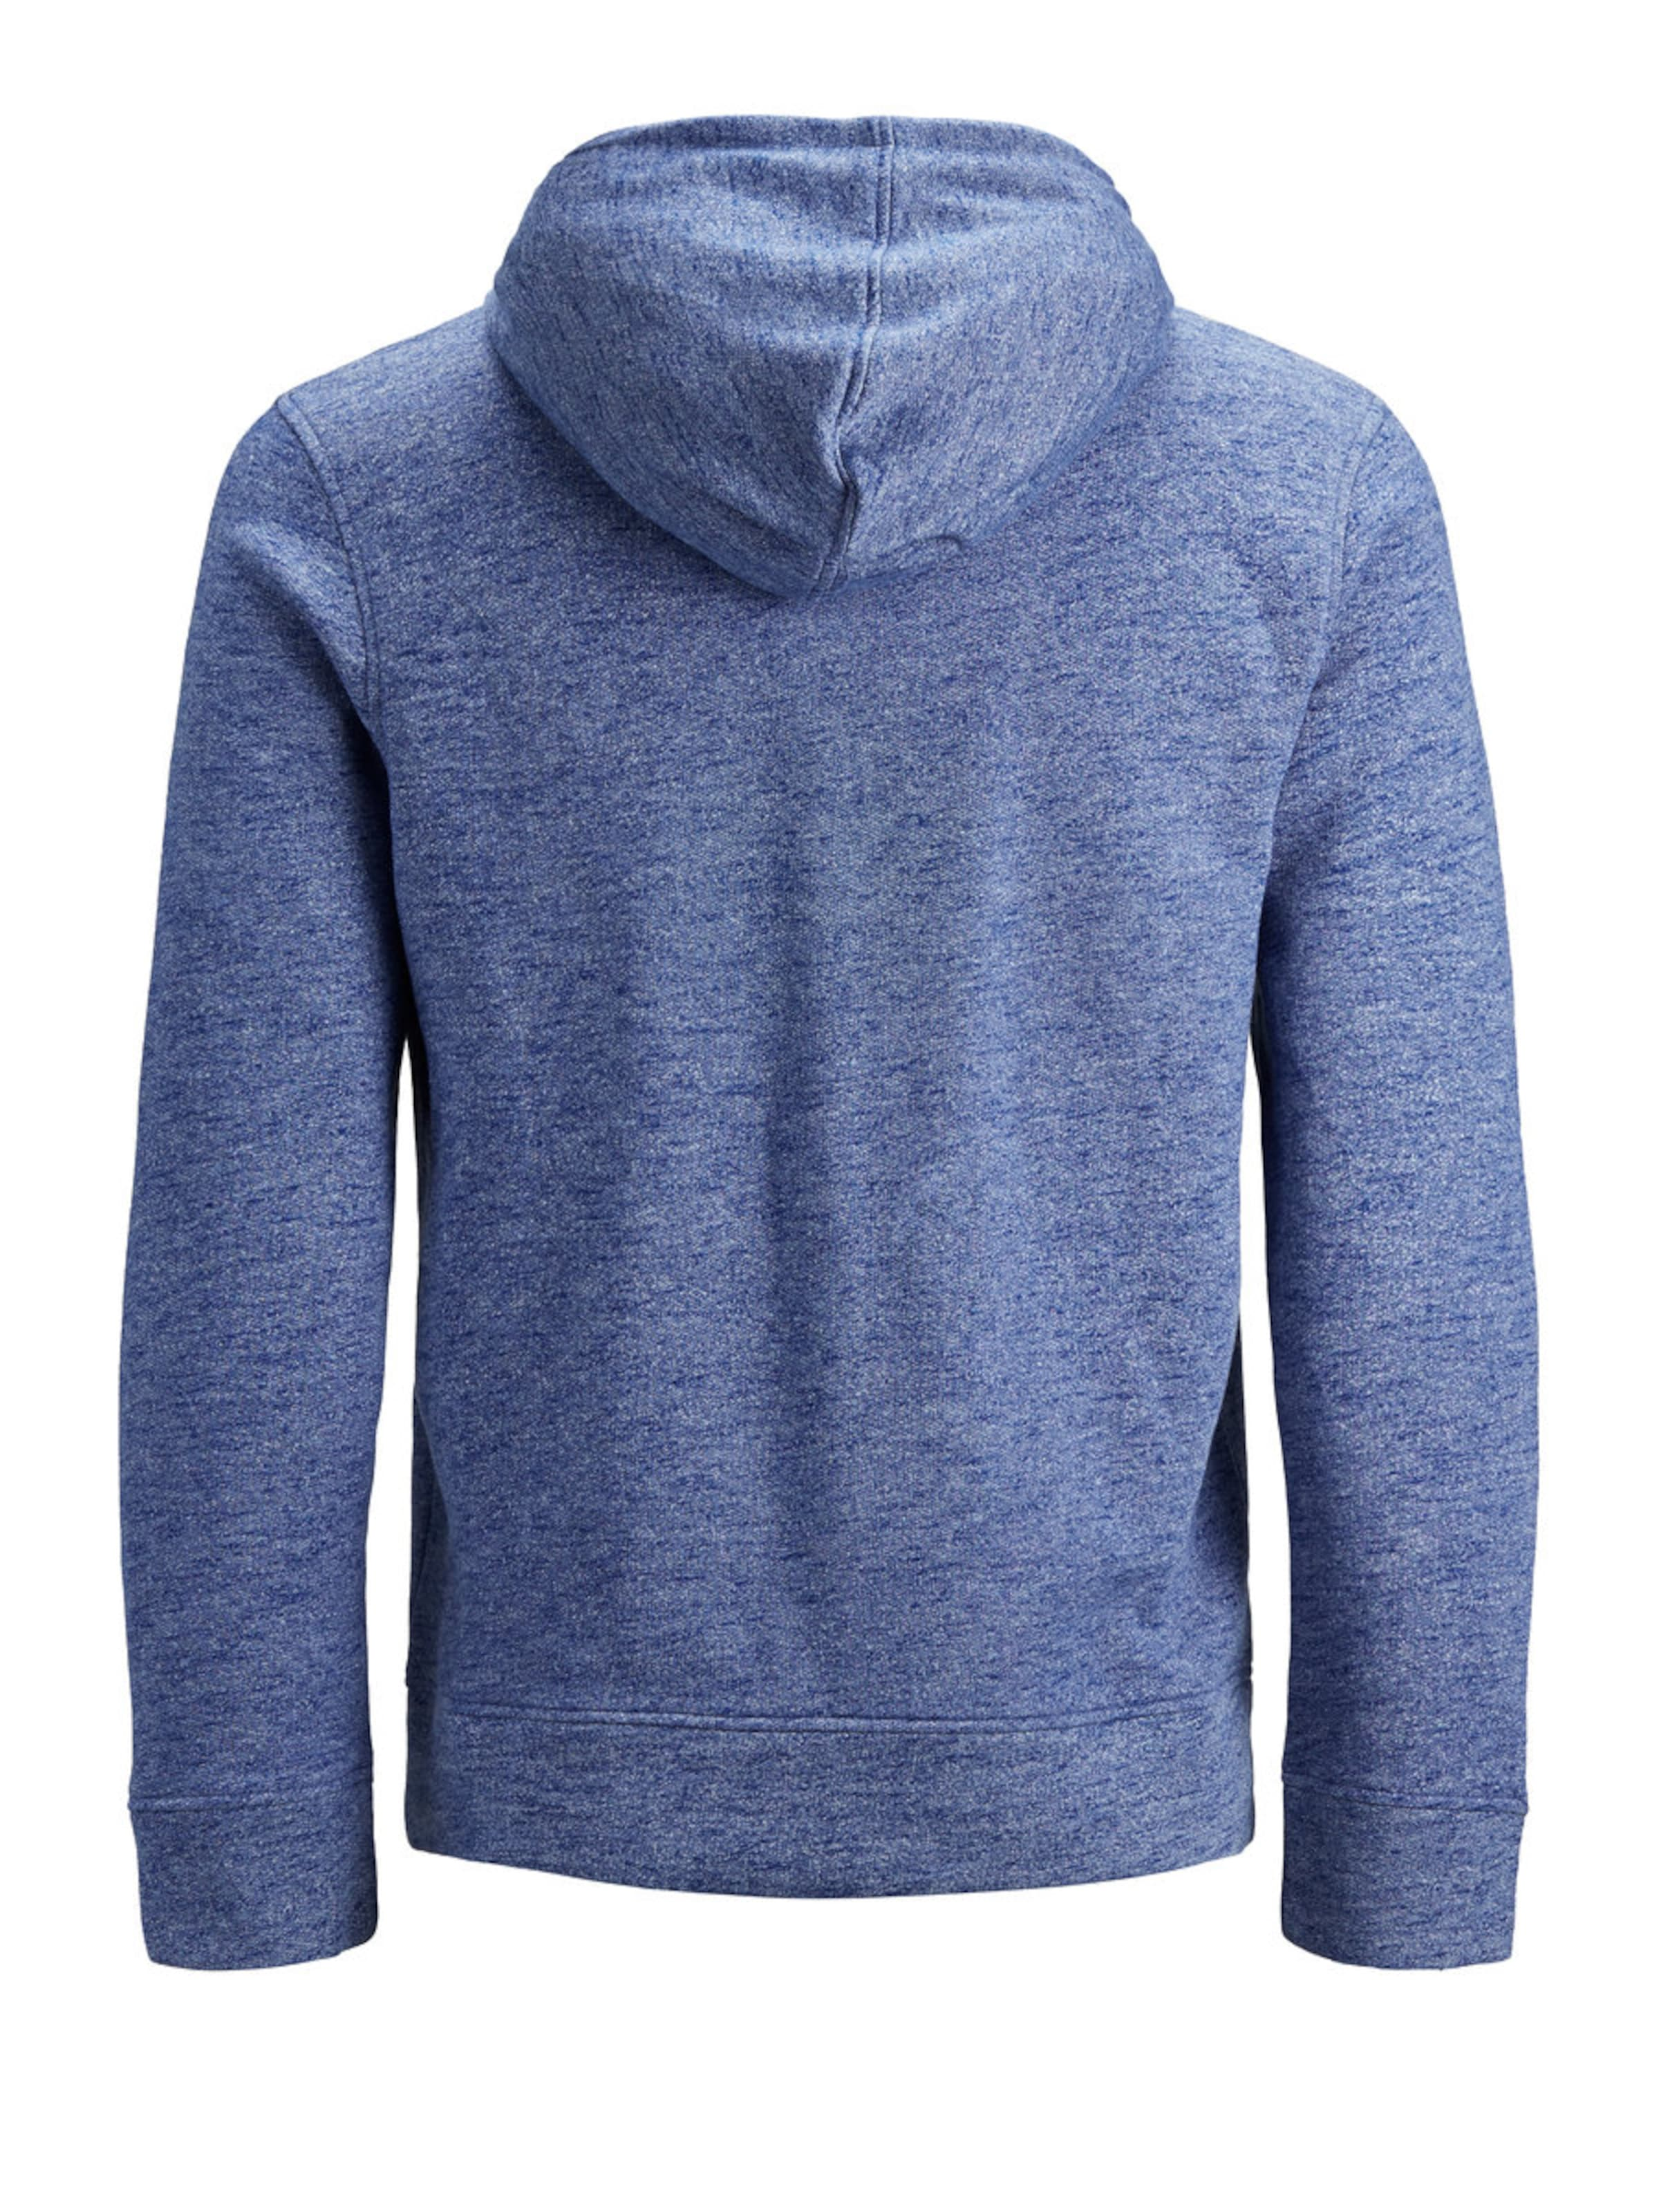 Jones Jackamp; RoyalblauWeiß In Hoodie Hoodie Jones In RoyalblauWeiß Jackamp; W9YEHID2